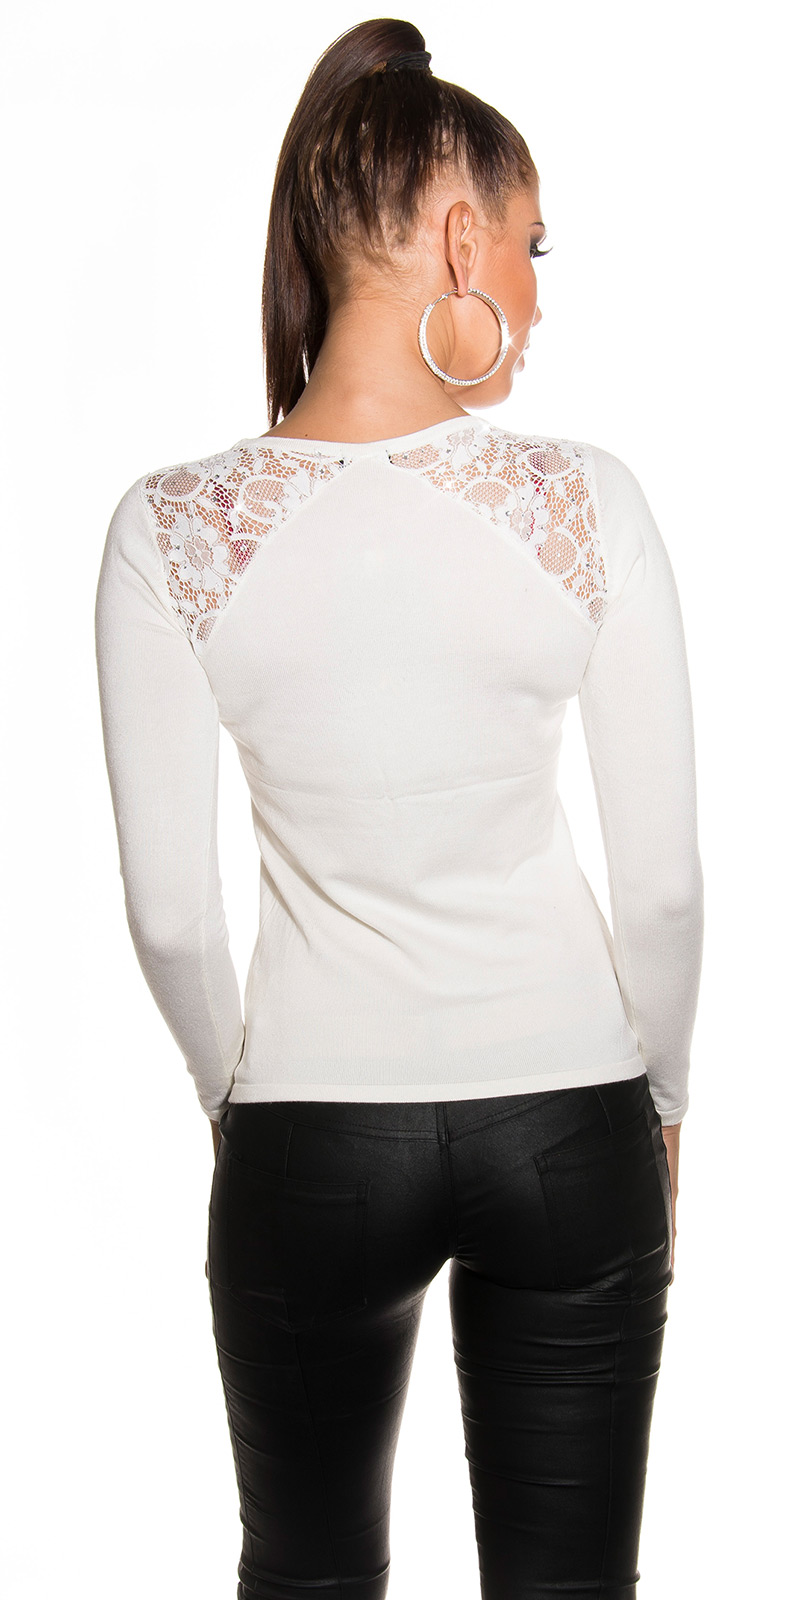 ookoucla_sweater_with_lace_and_rhinestones__color_white_size_onesize_0000in-143_weiss_54